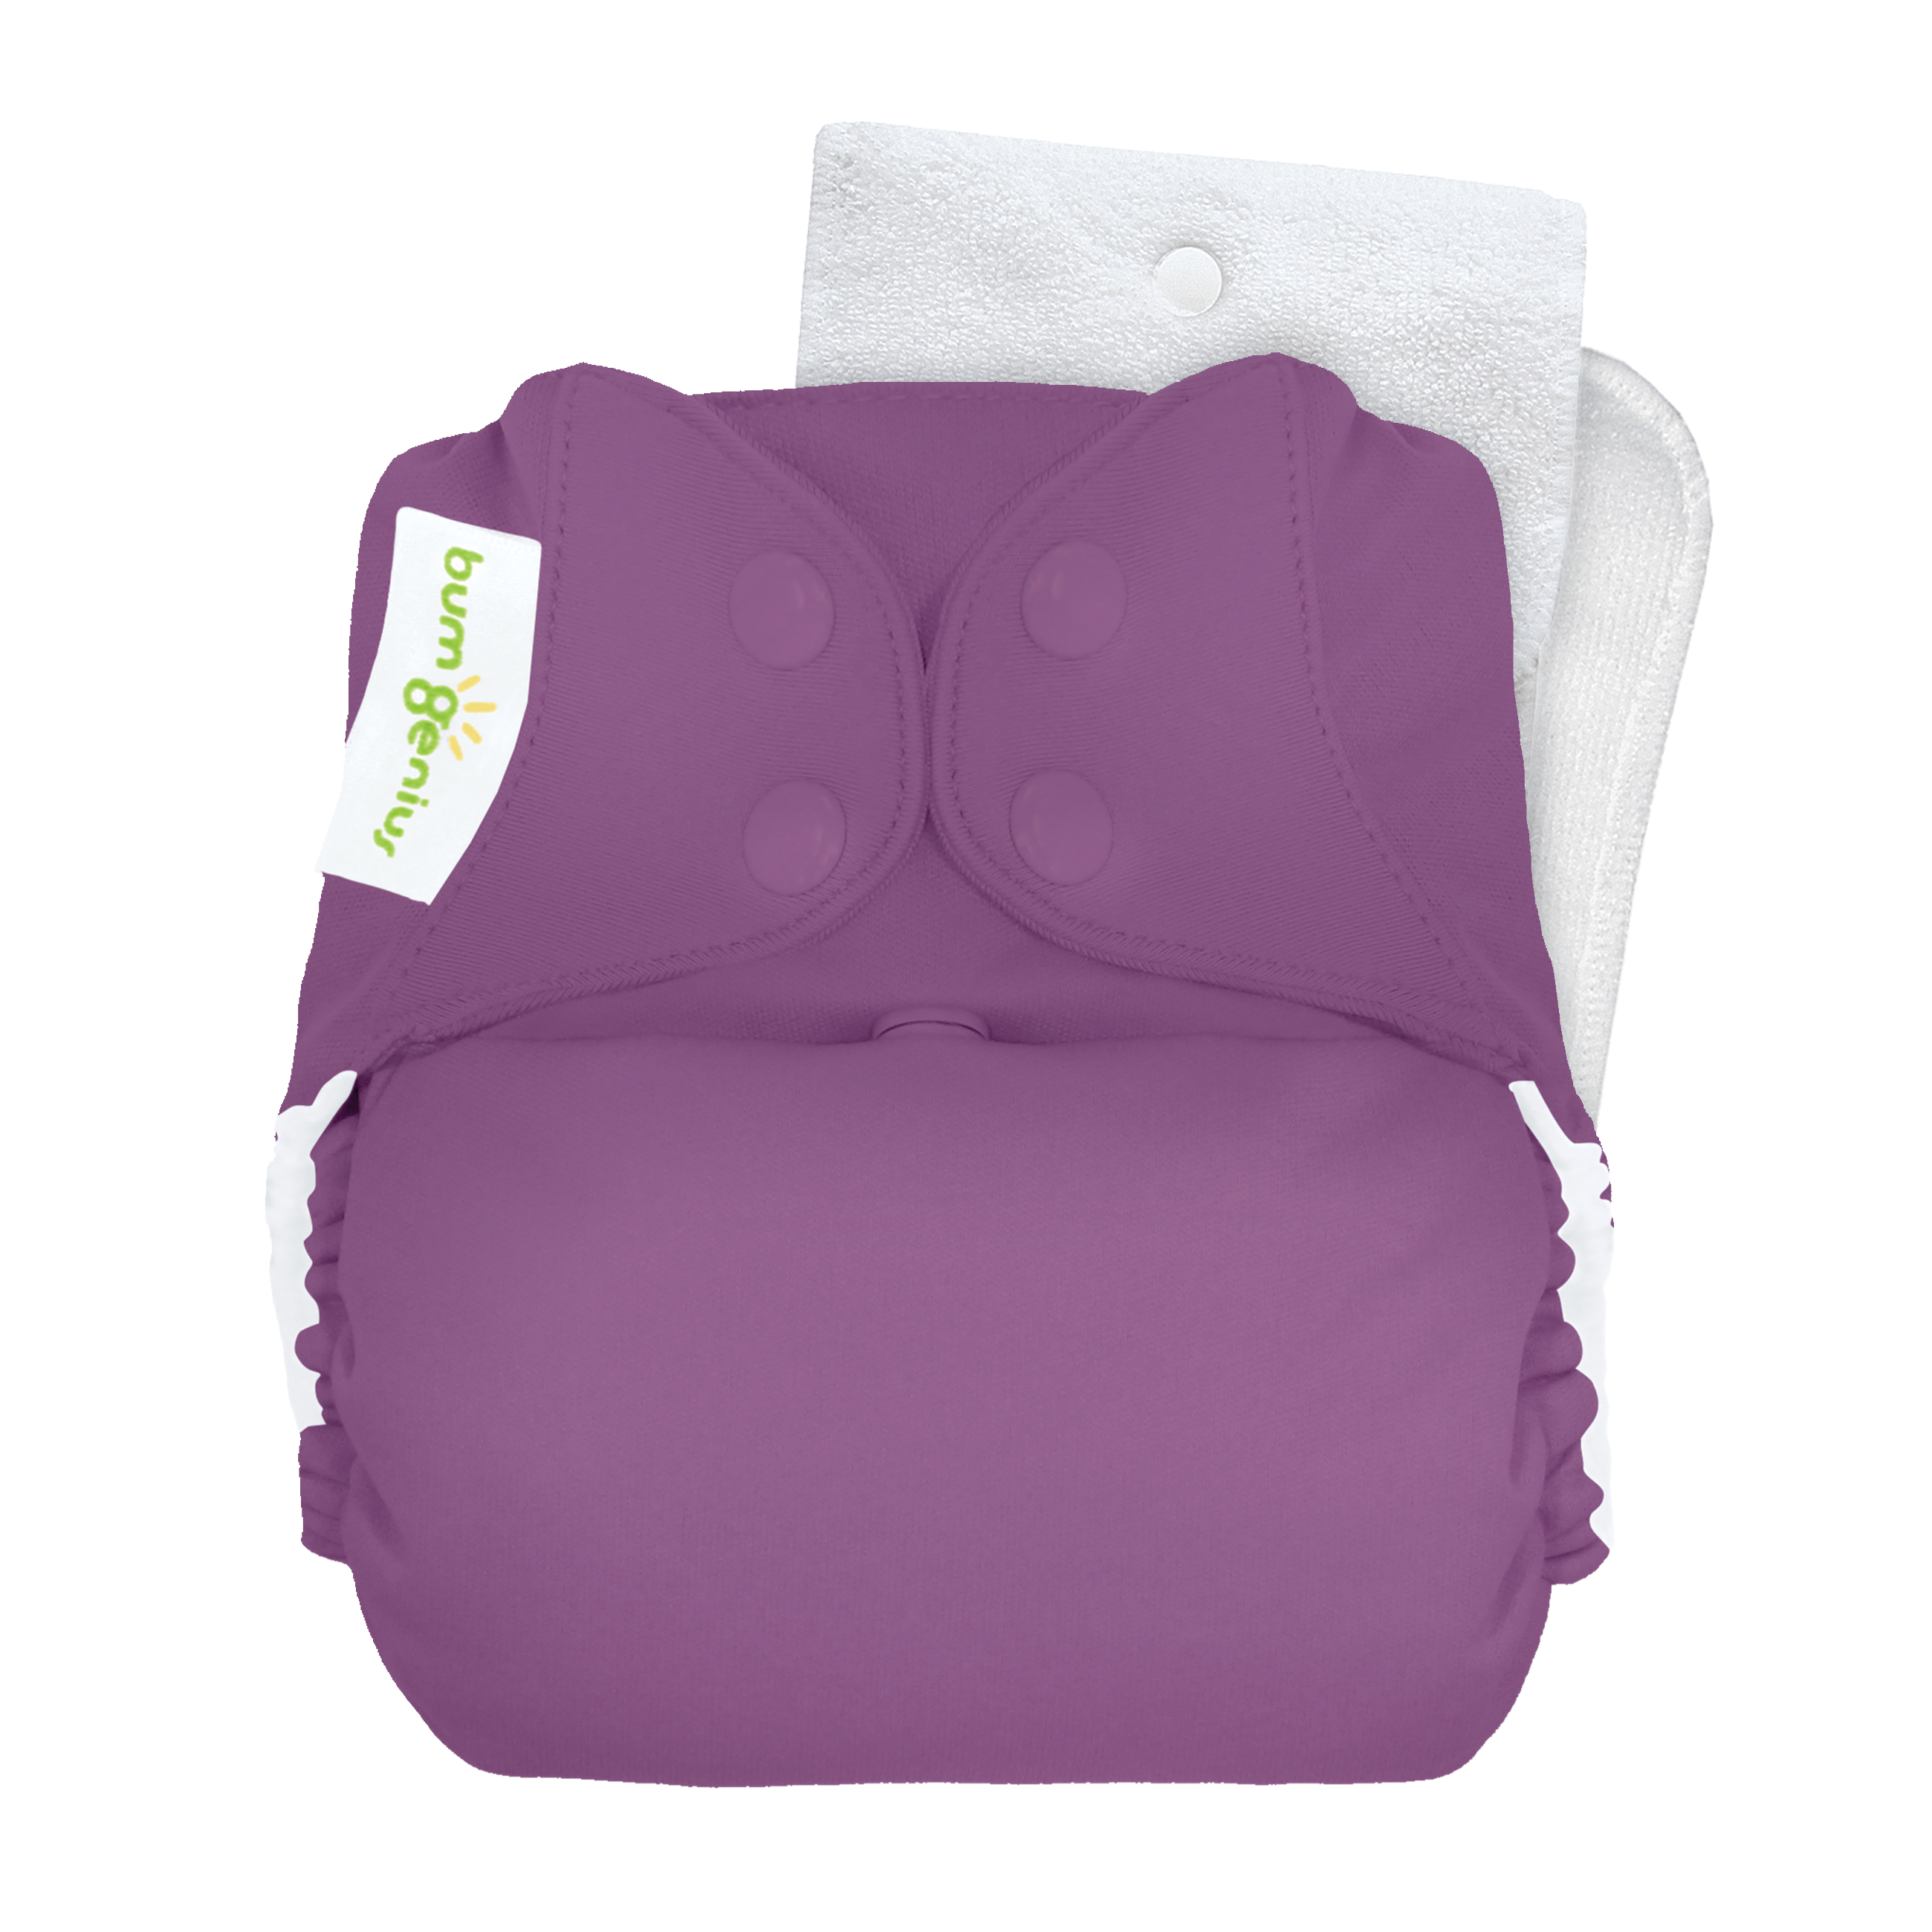 bumGenius Original One-Size Cloth Diaper 5.0 - Jelly (fits babies 8-35 lbs)